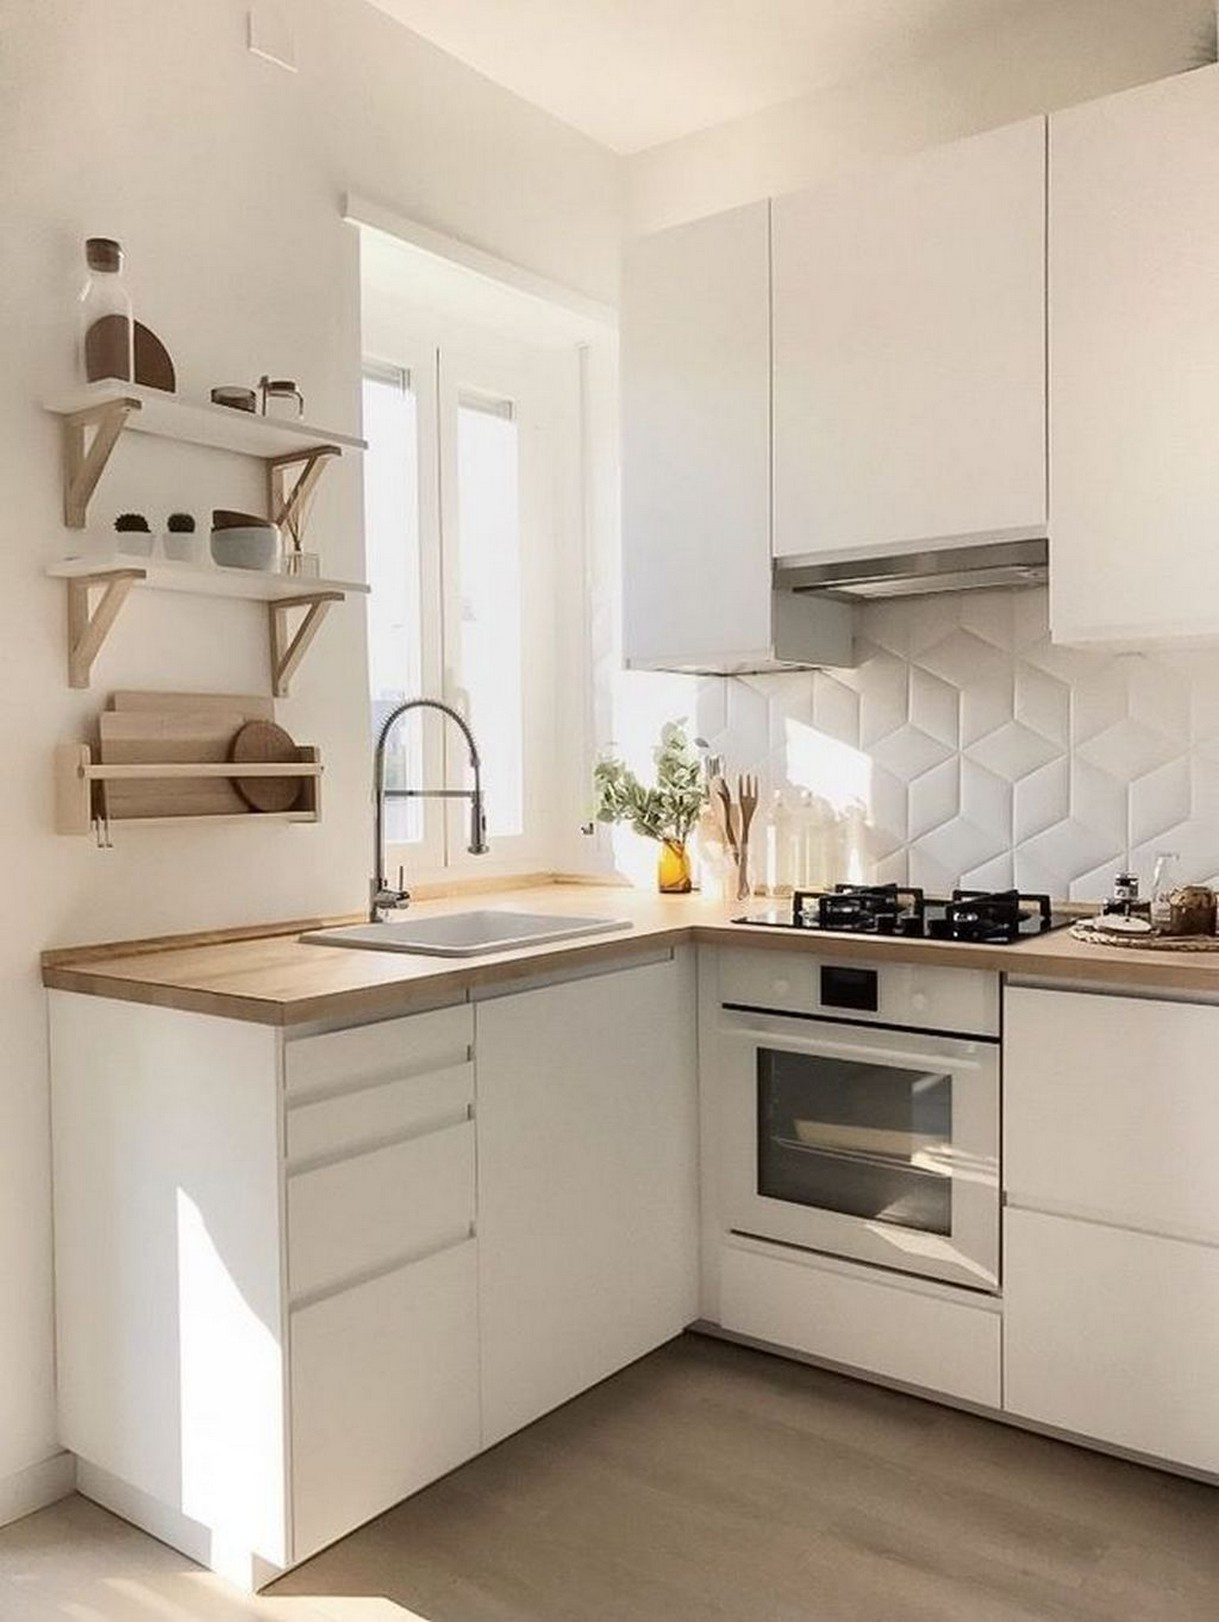 86 Some Small Kitchen Ideas To Help You Do Up Your Kitchen 20